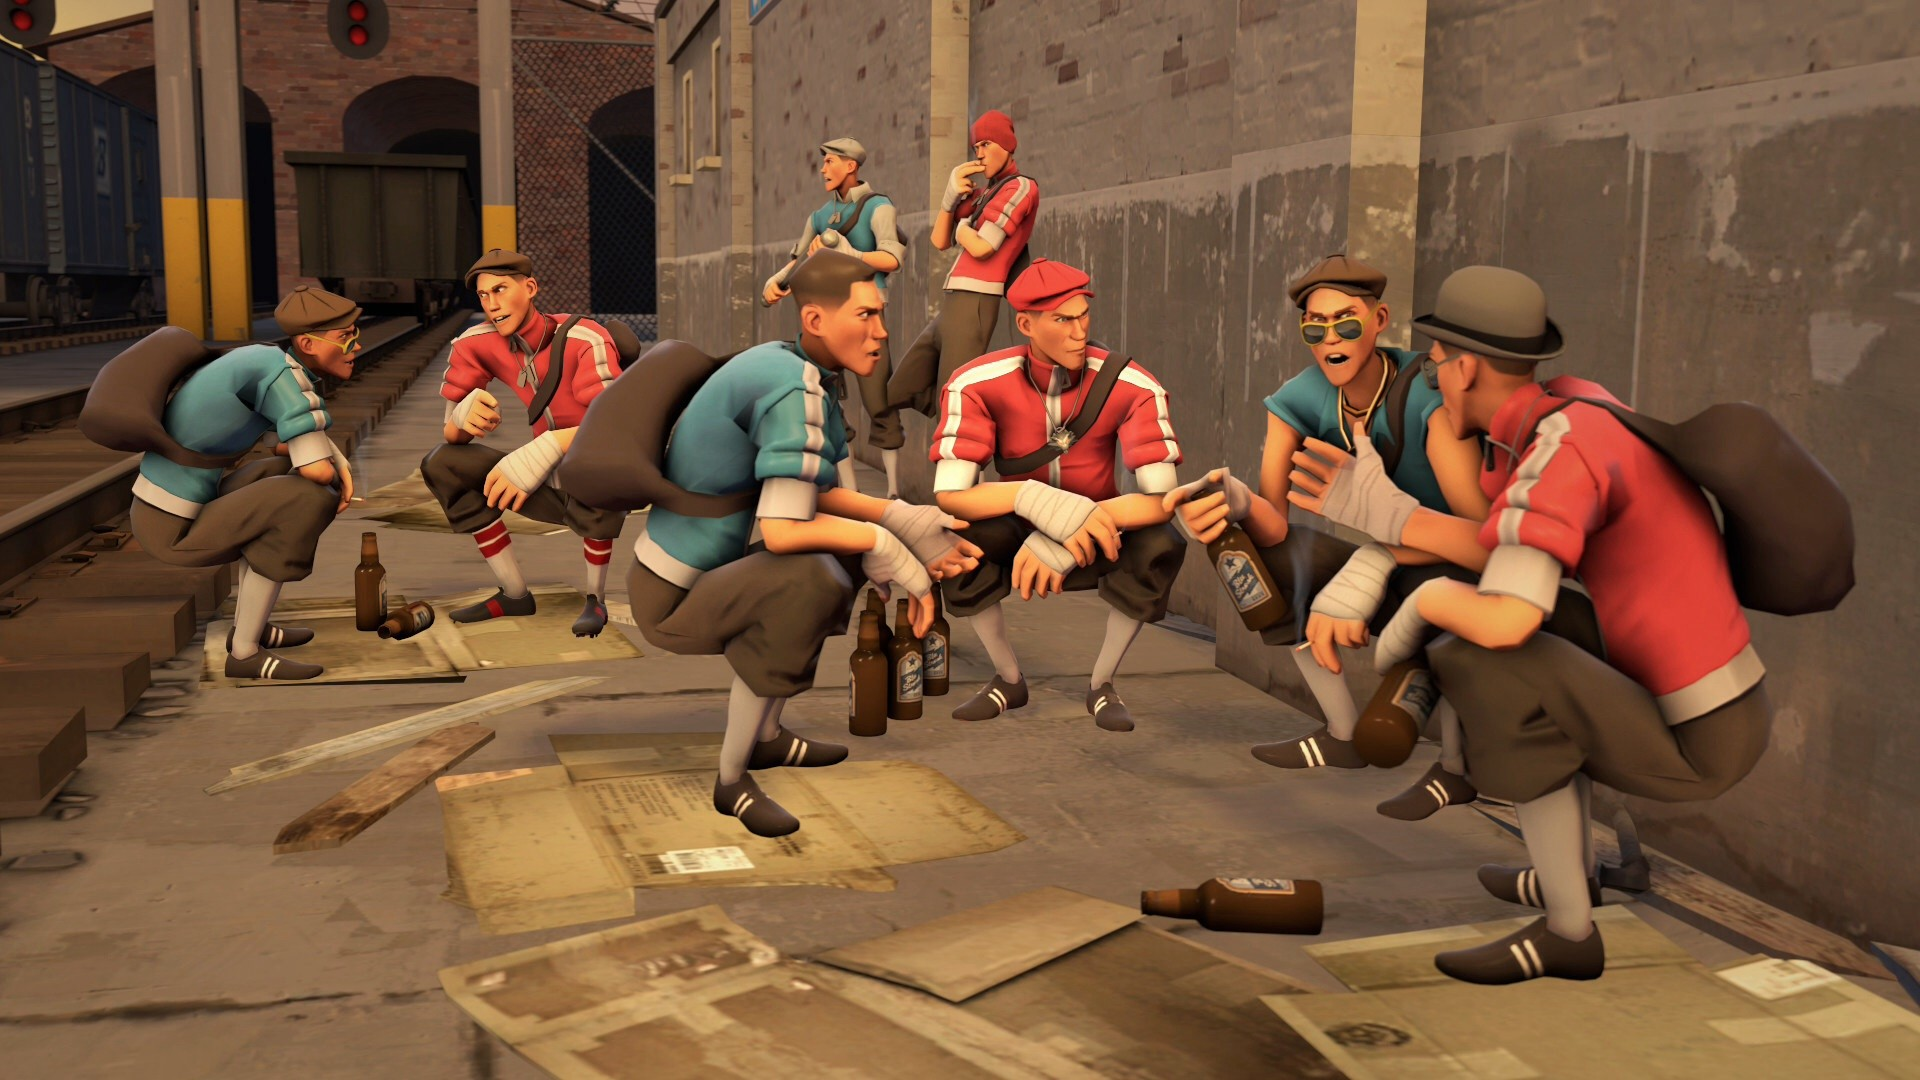 1920x1080 TF2 Team fortress 2 hd wallpaper id